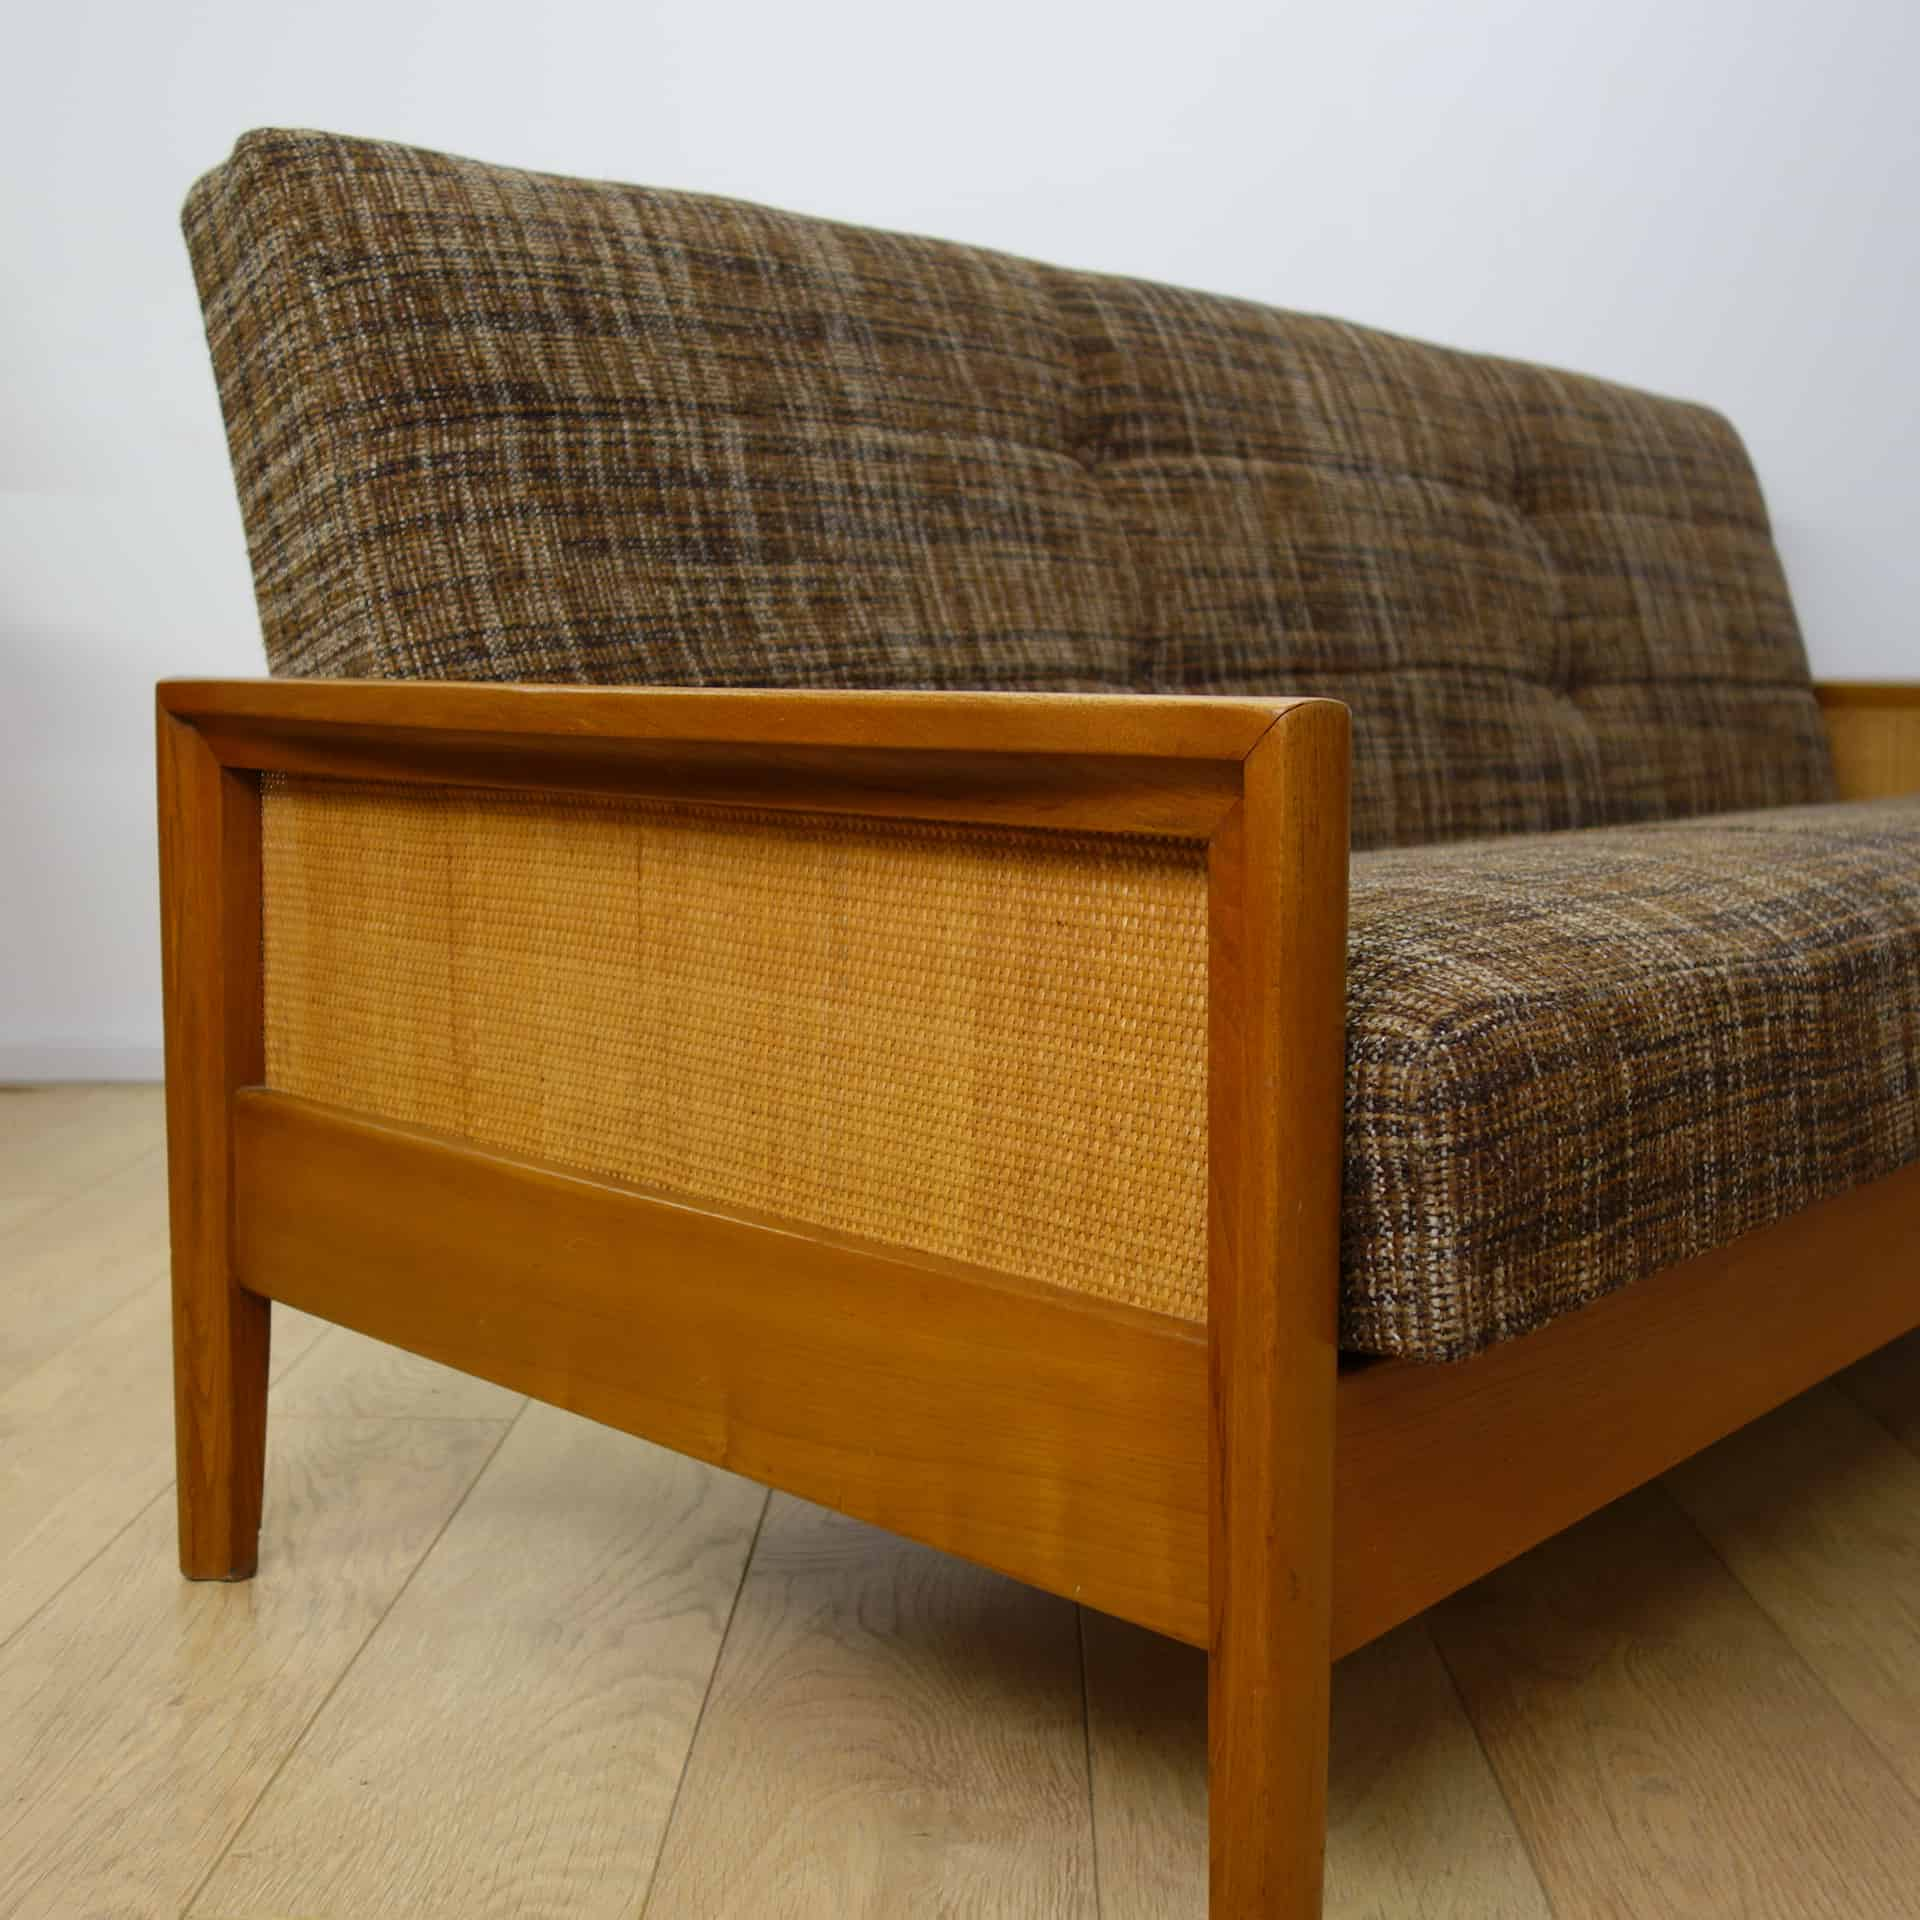 Wicker Futon Sofa Bed 1960s Sofa Bed With Rattan Sides Mark Parrish Mid